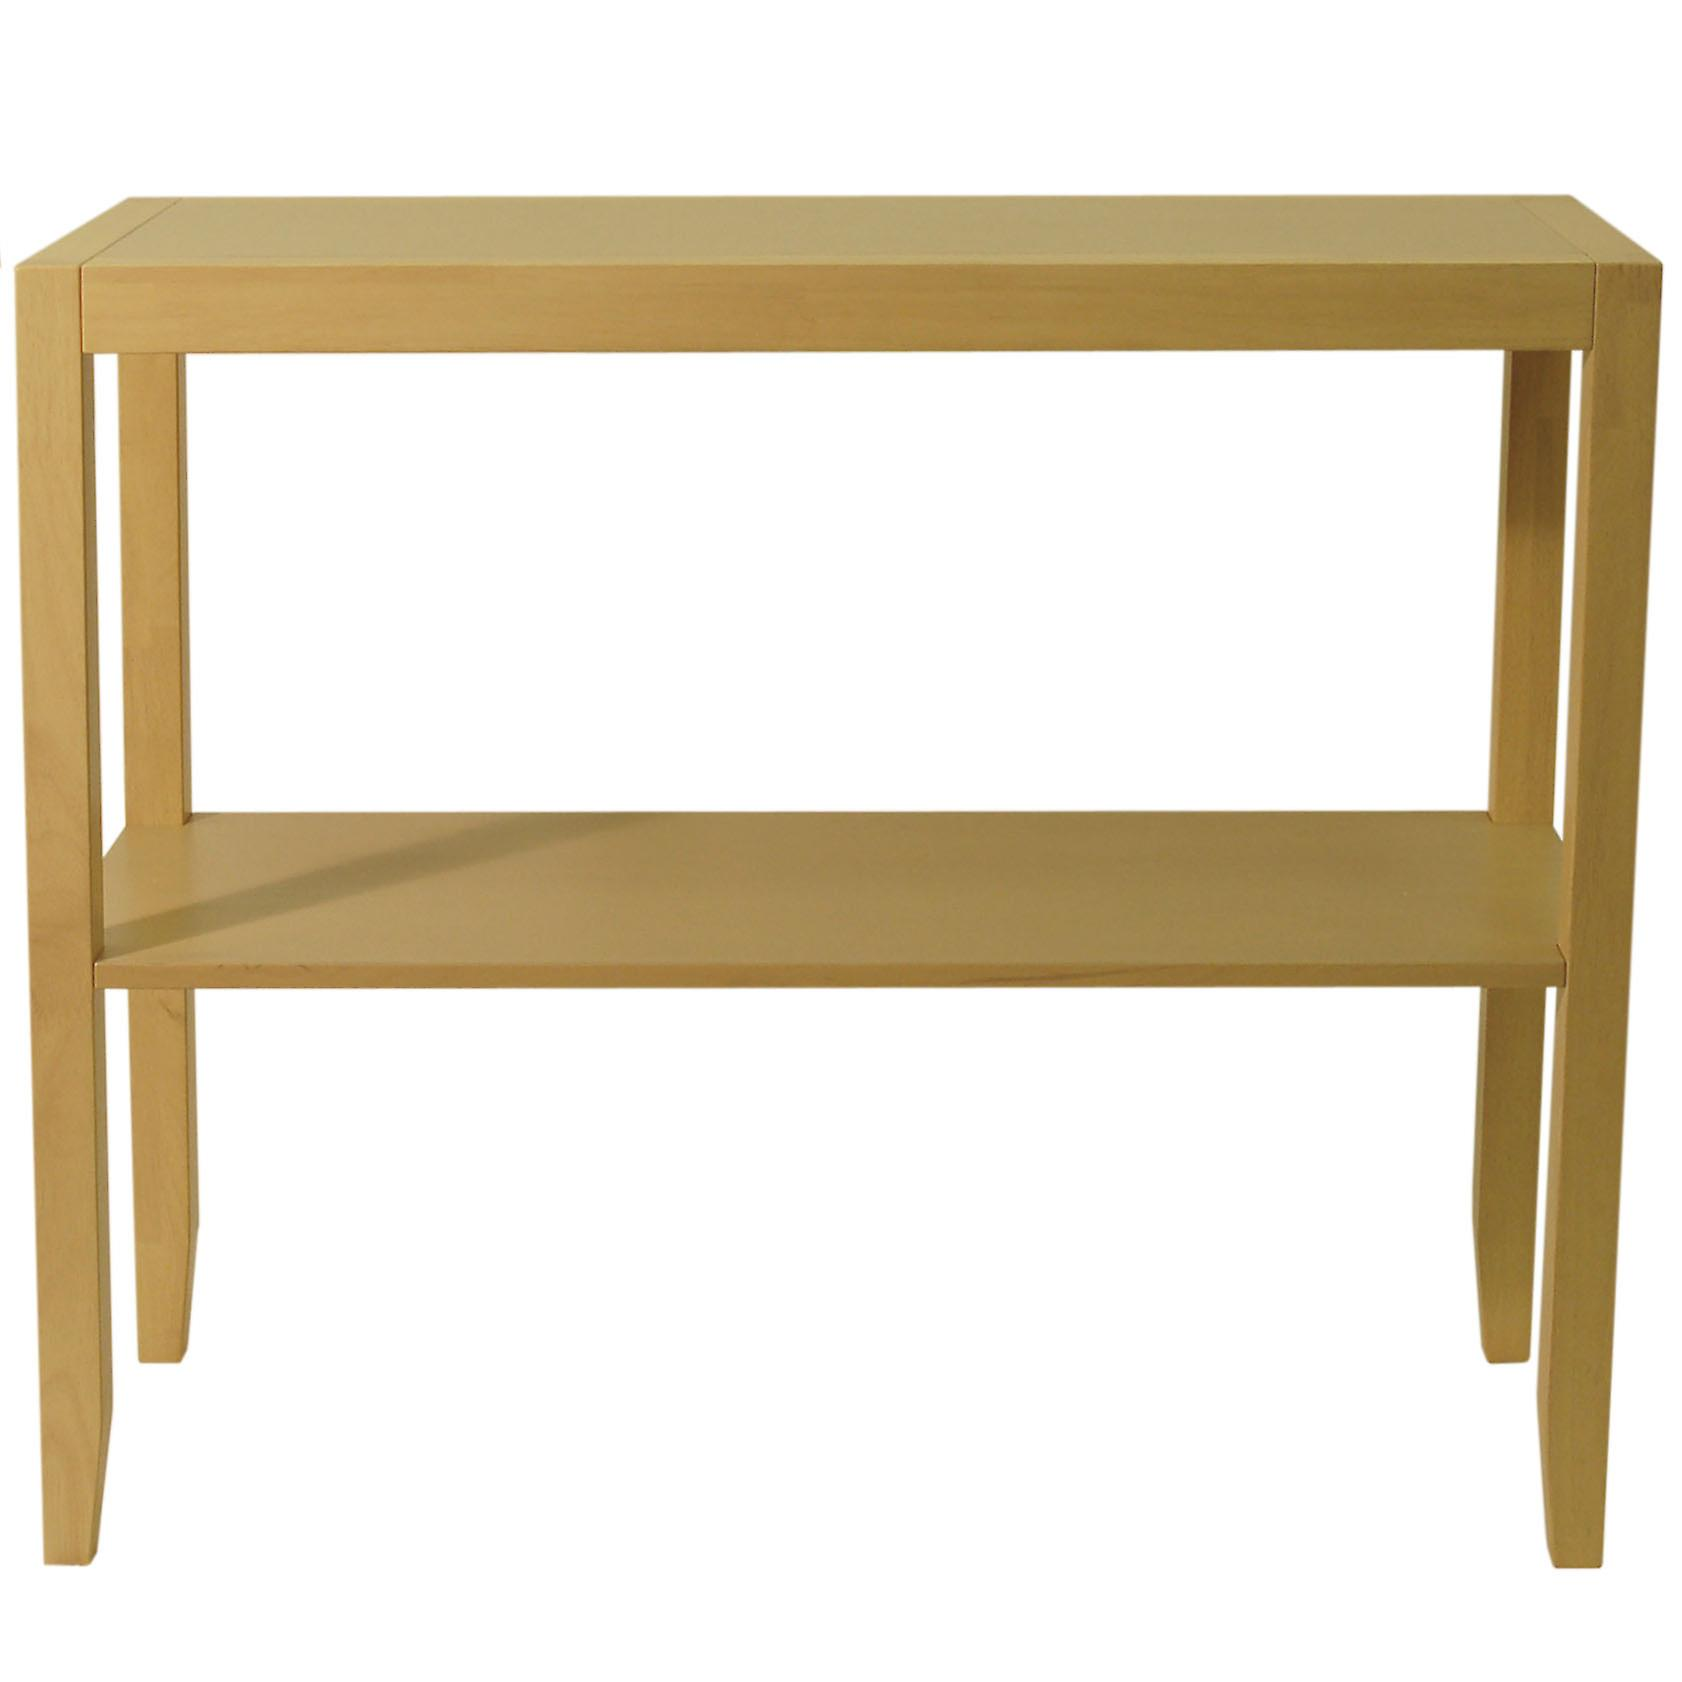 Anywhere - Solid hout Console / Side Table - natuurlijke